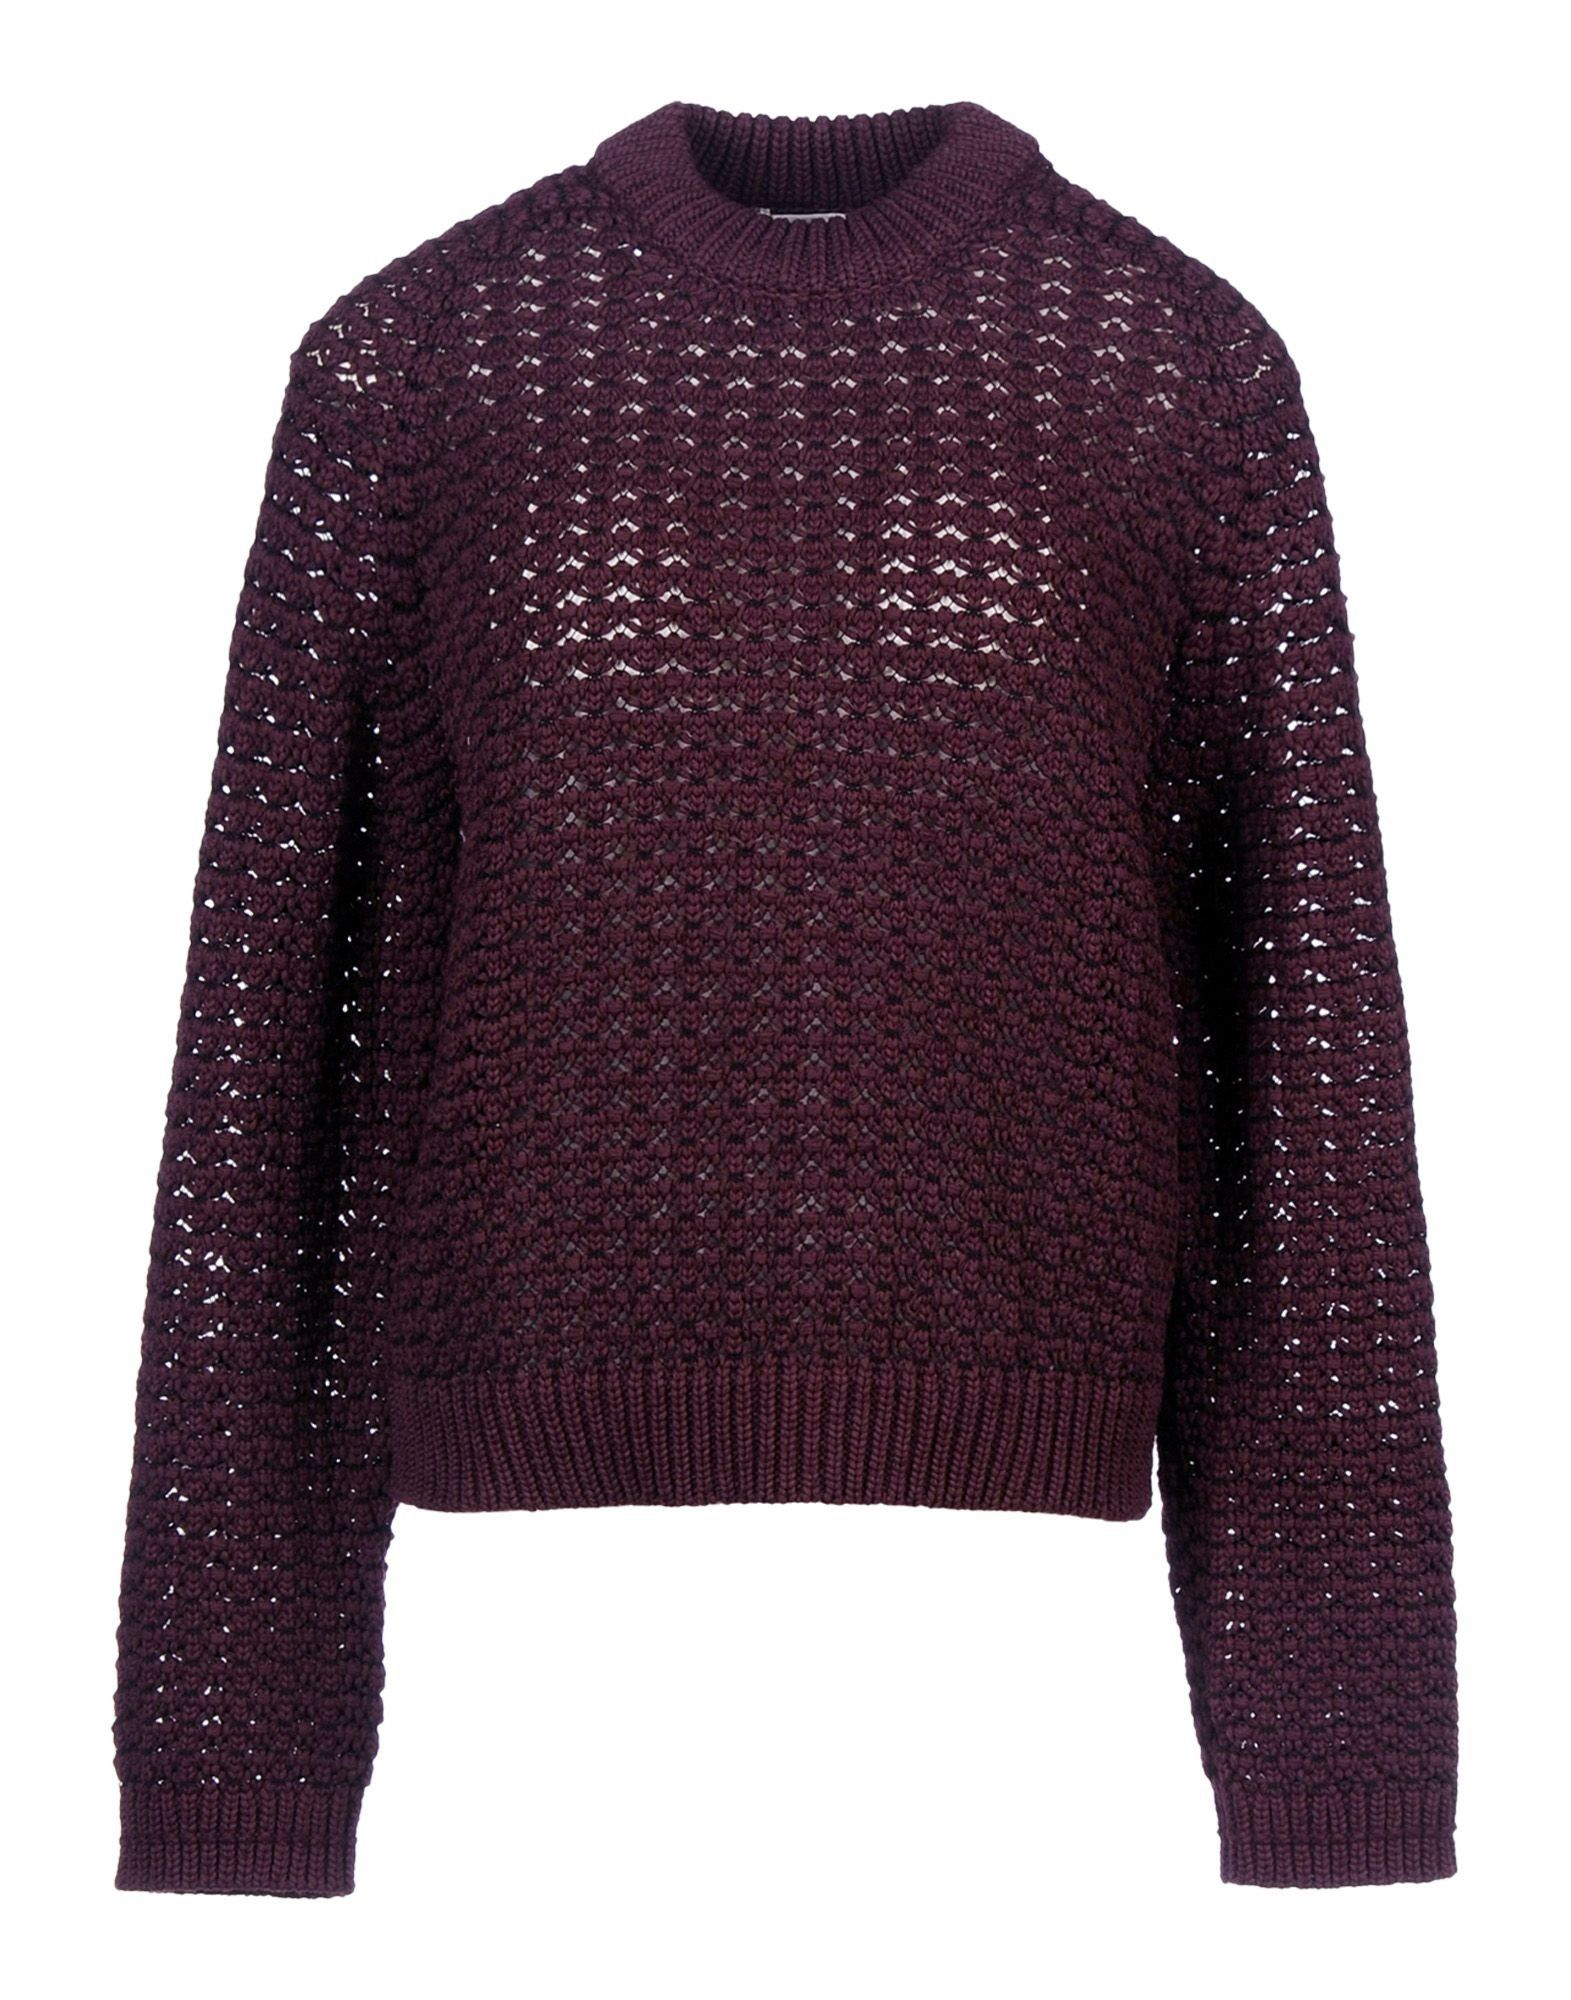 3.1 Phillip Lim: Burgundy Open-Knit Sweater | Knits | Pinterest ...